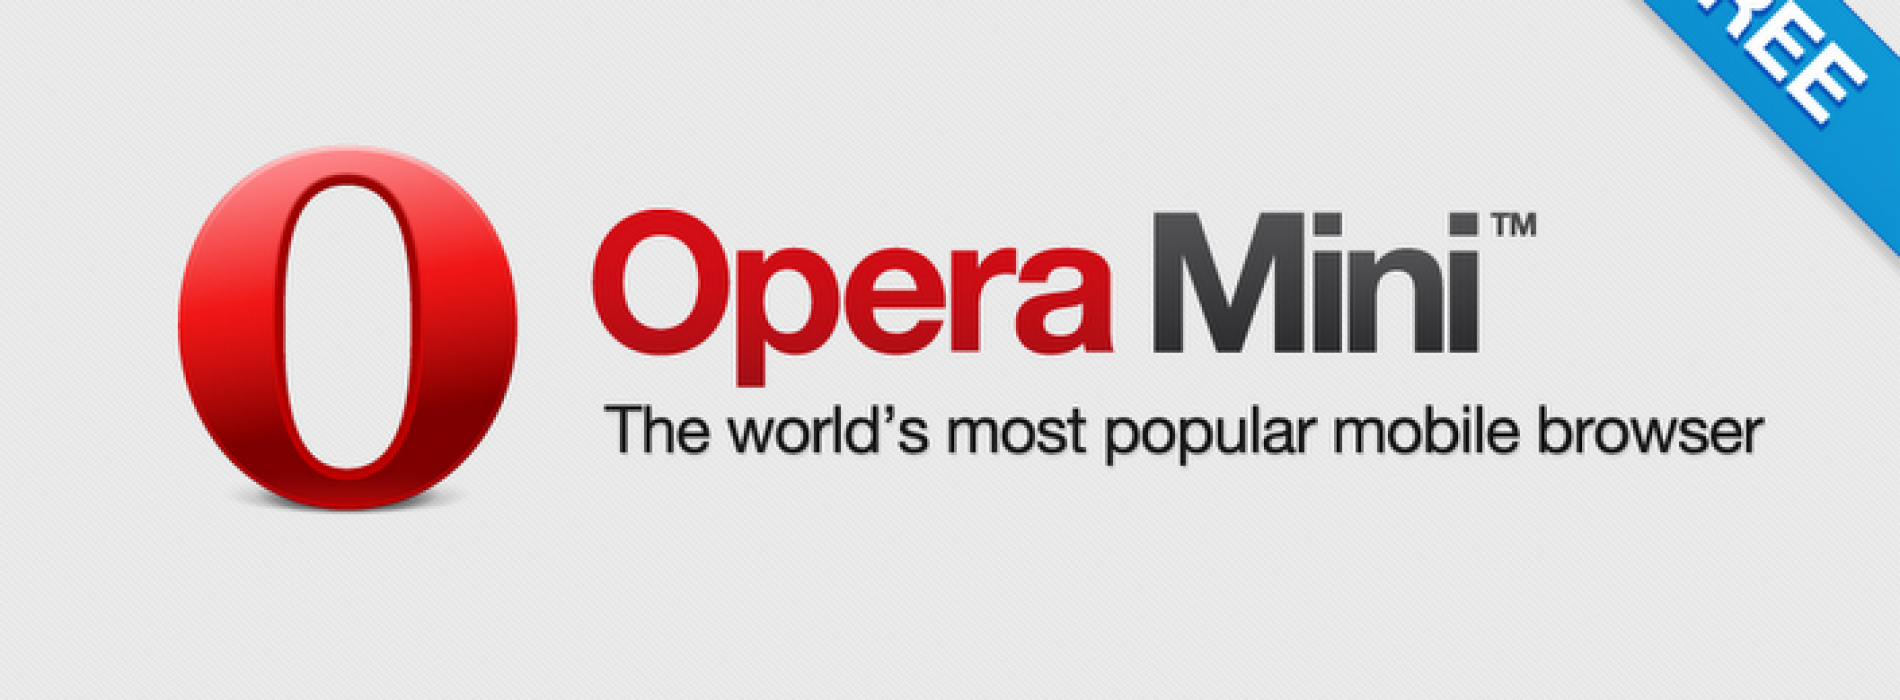 Opera Min 7.5 introduces Smart Page feature